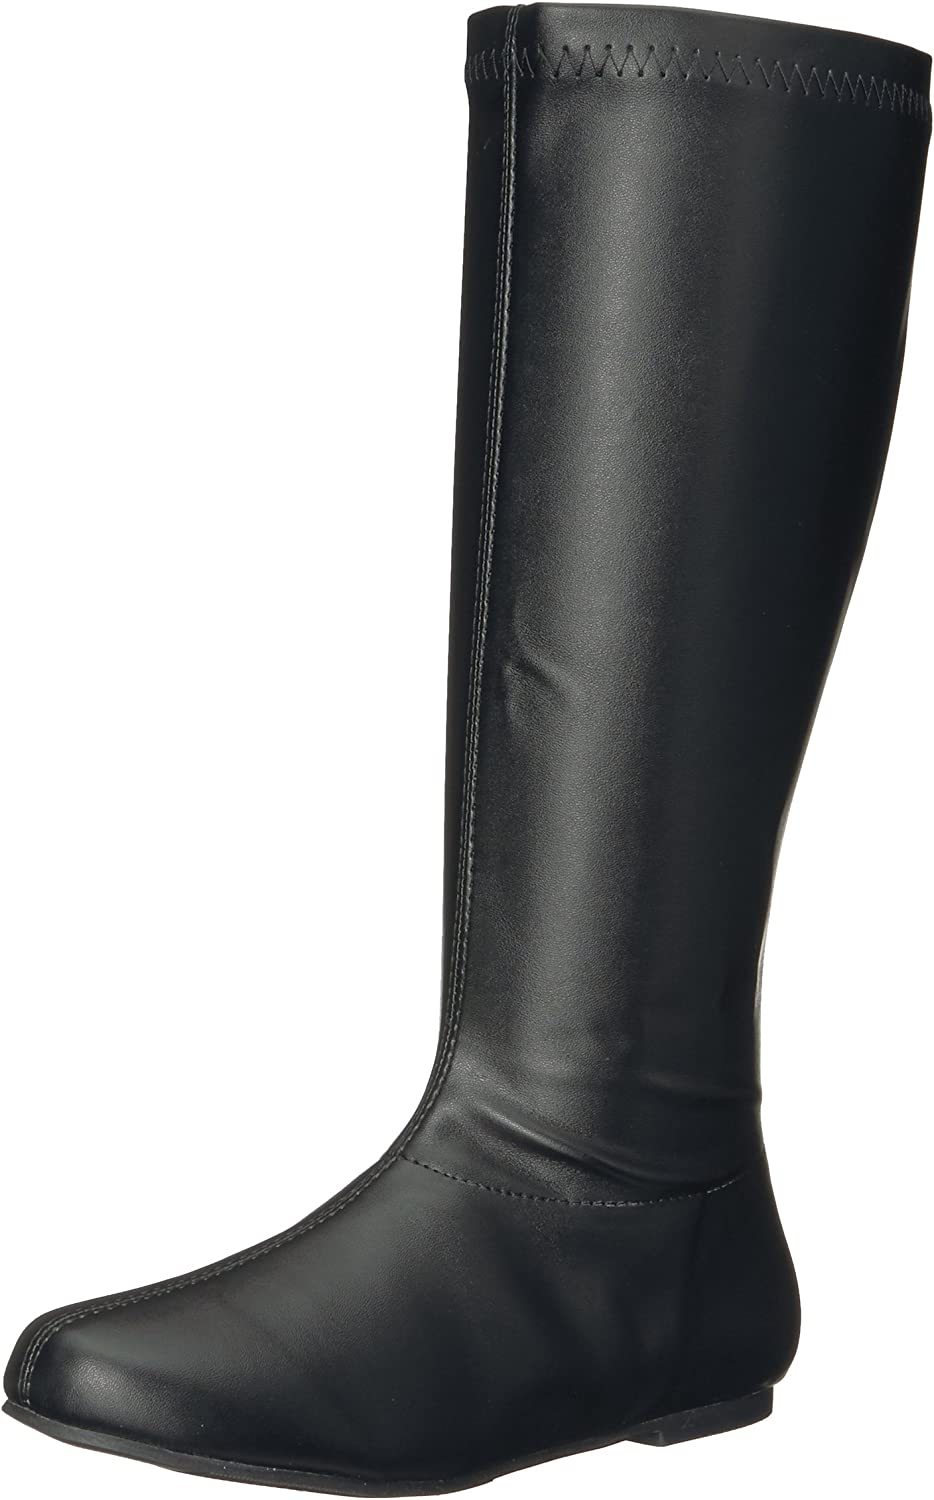 Details about  /Ellie Shoes Women/'s 106-avenge Engineer Boot